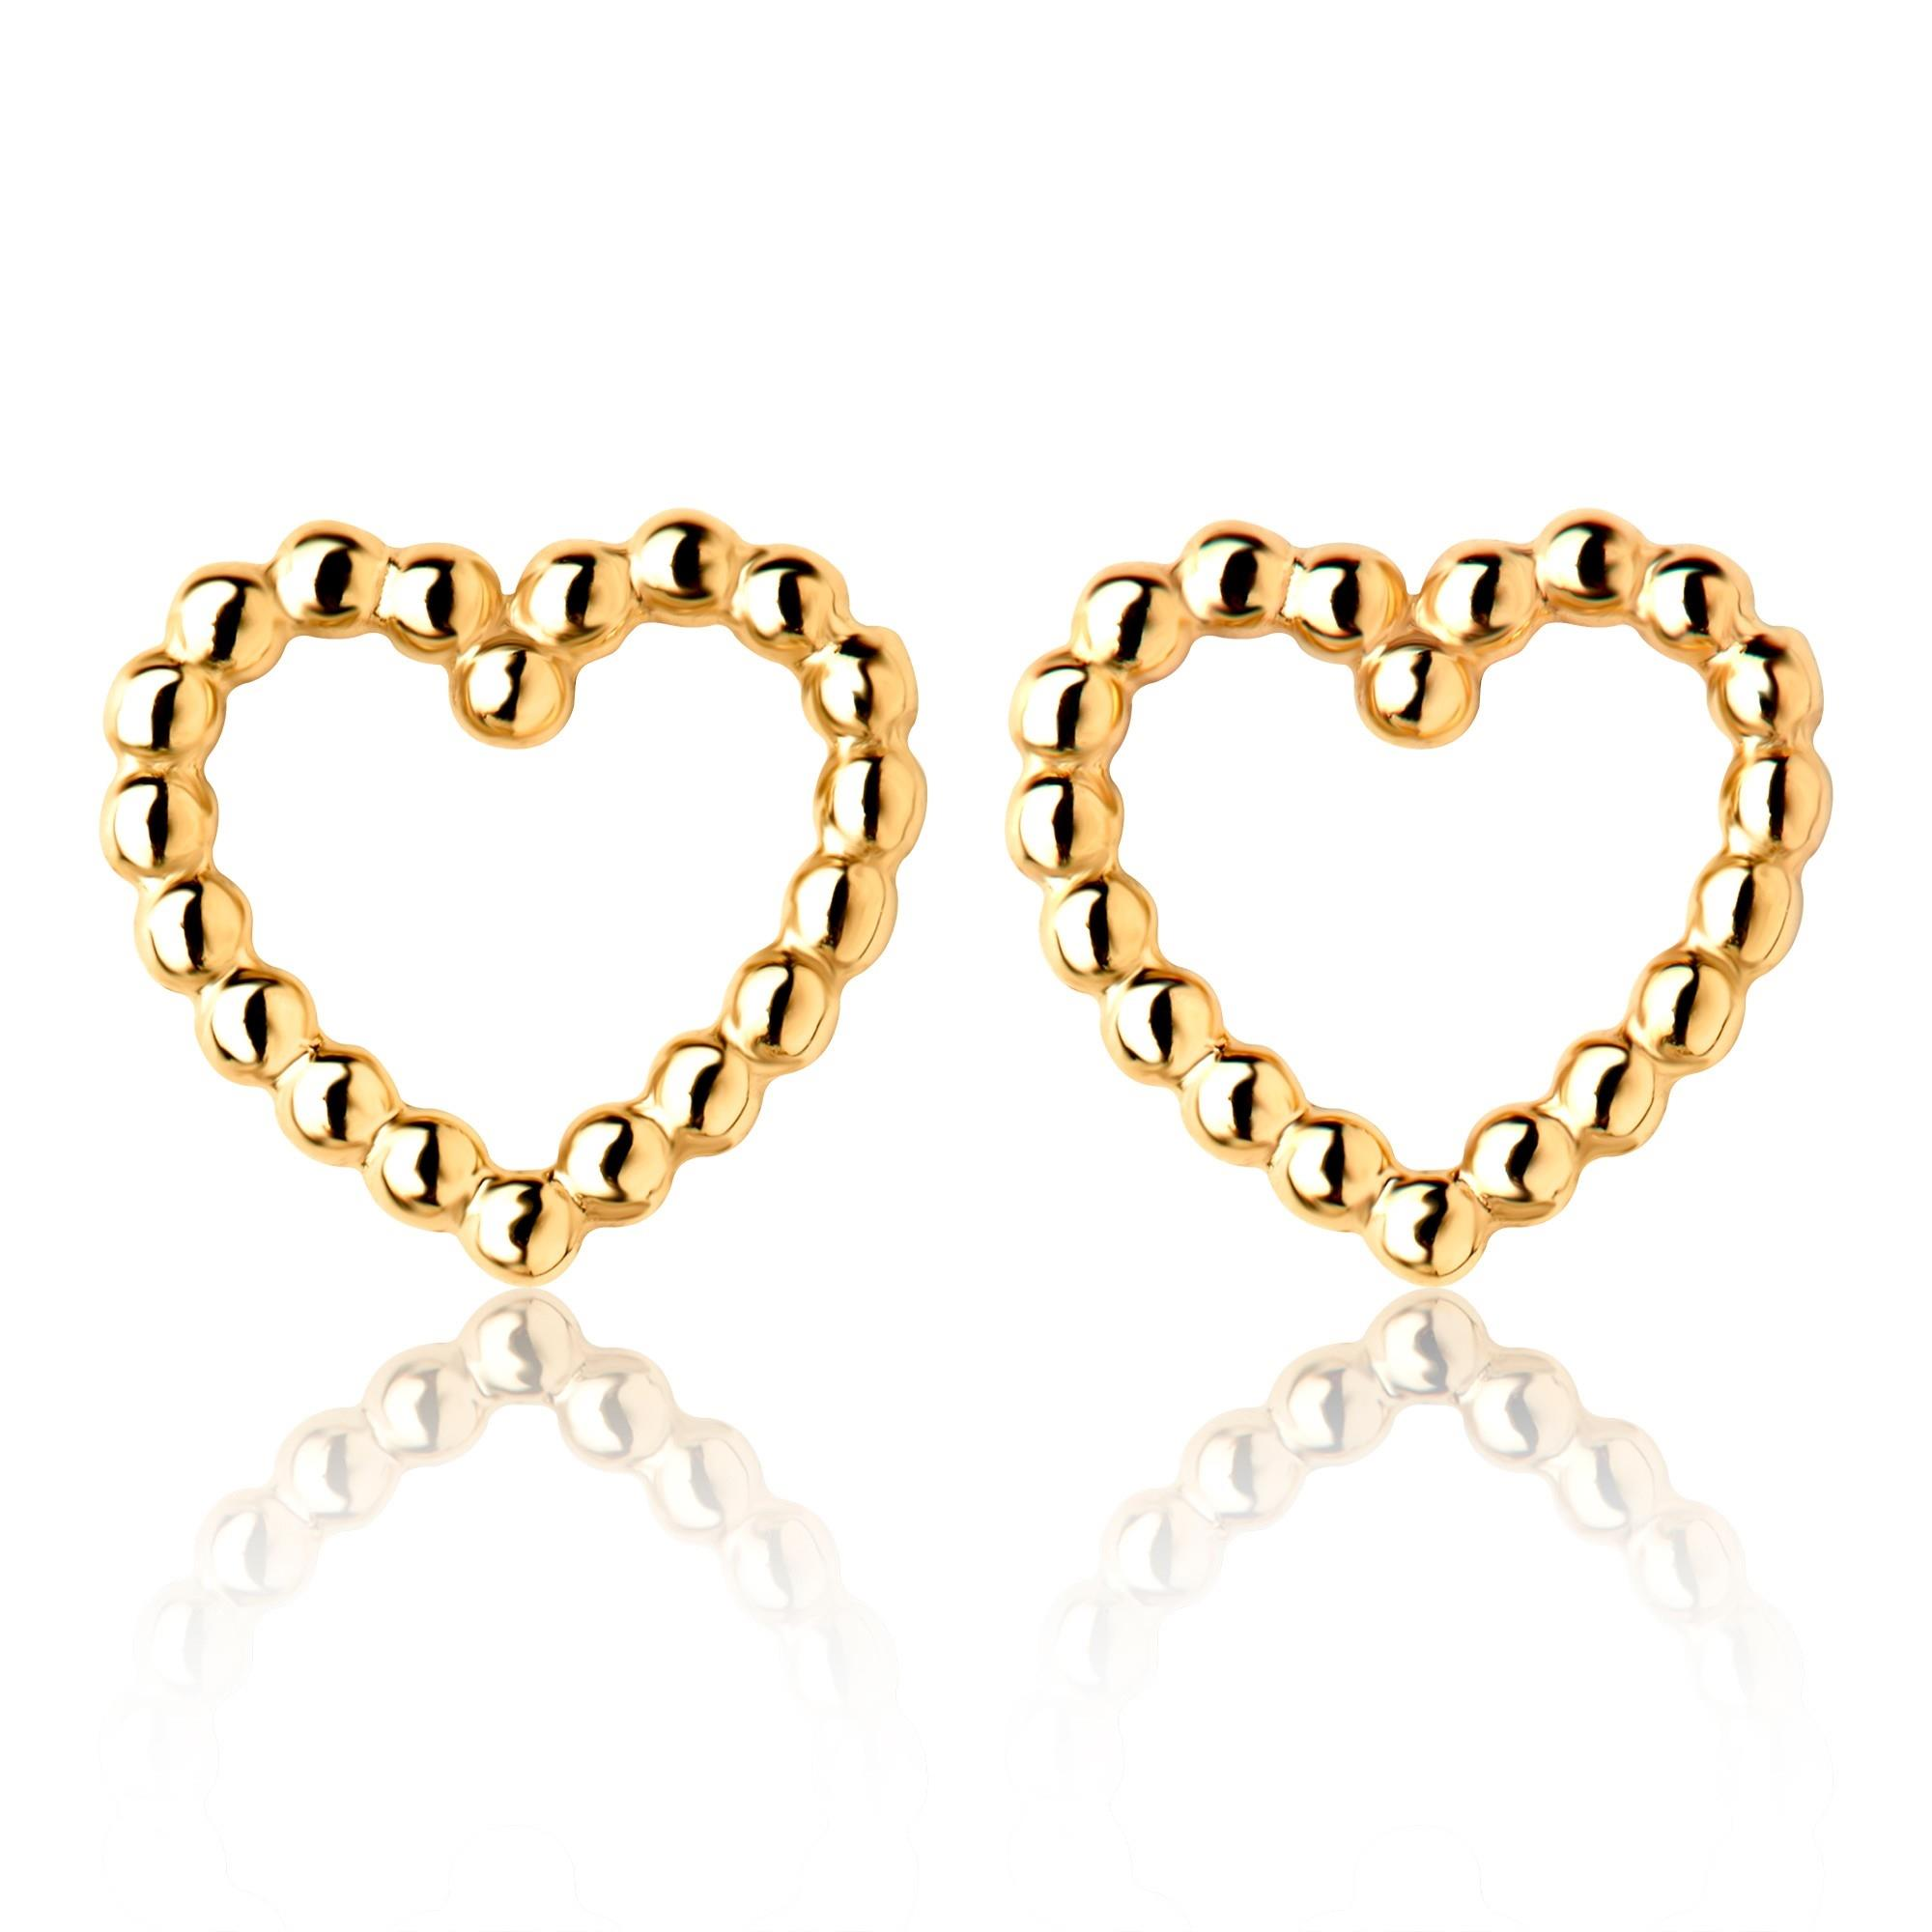 Aura 18ct Yellow Gold Heart Earrings | Pravins Jewellers